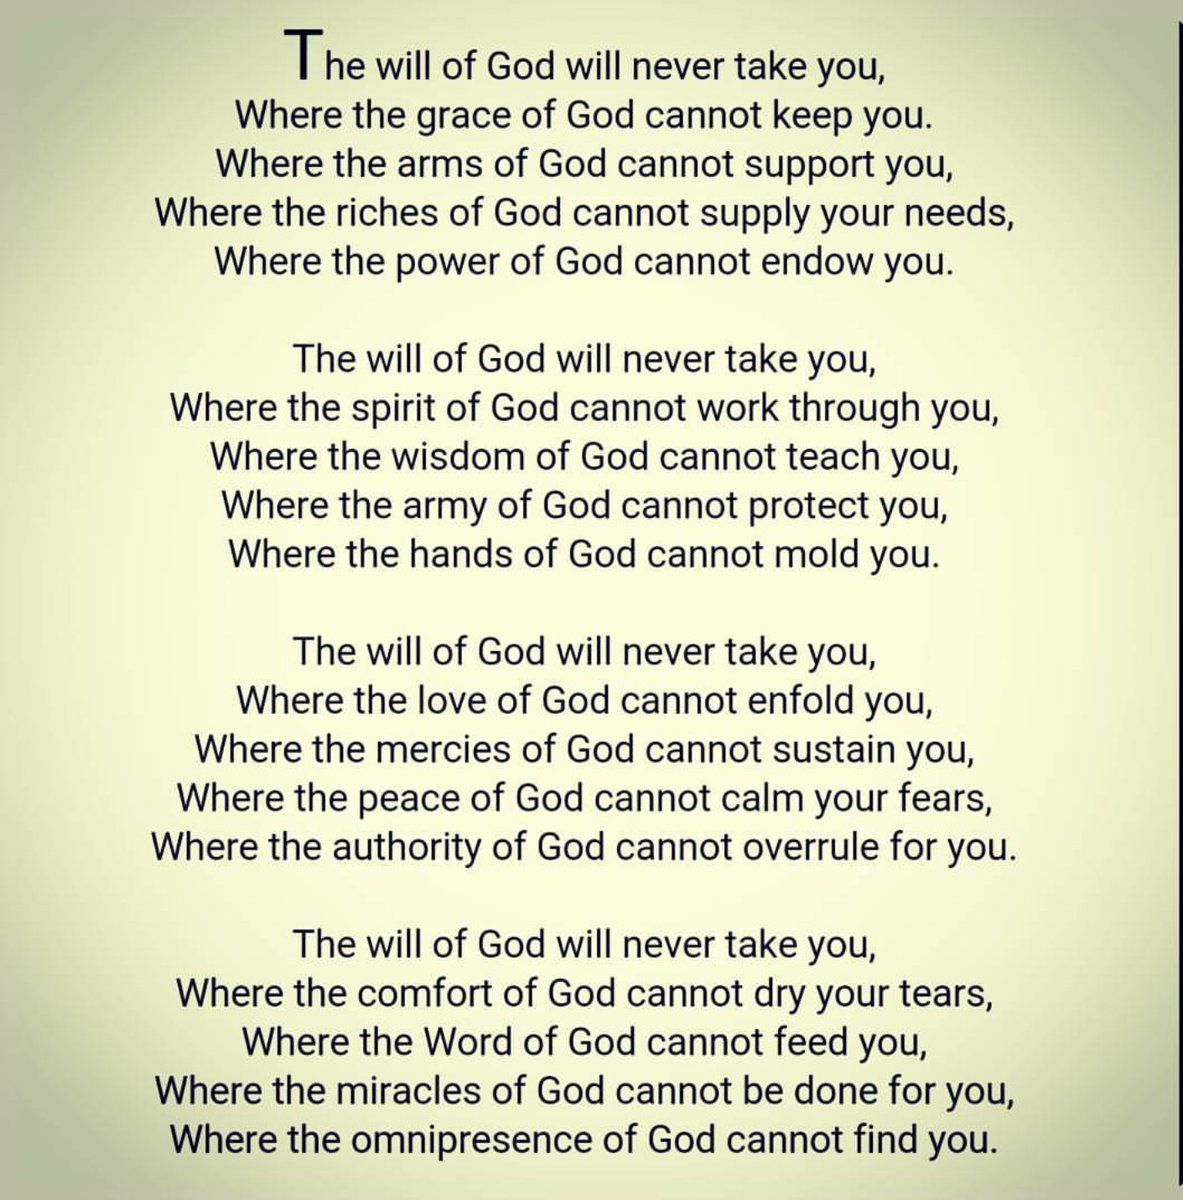 Image Result For The Will Of God Will Never Take You Where The